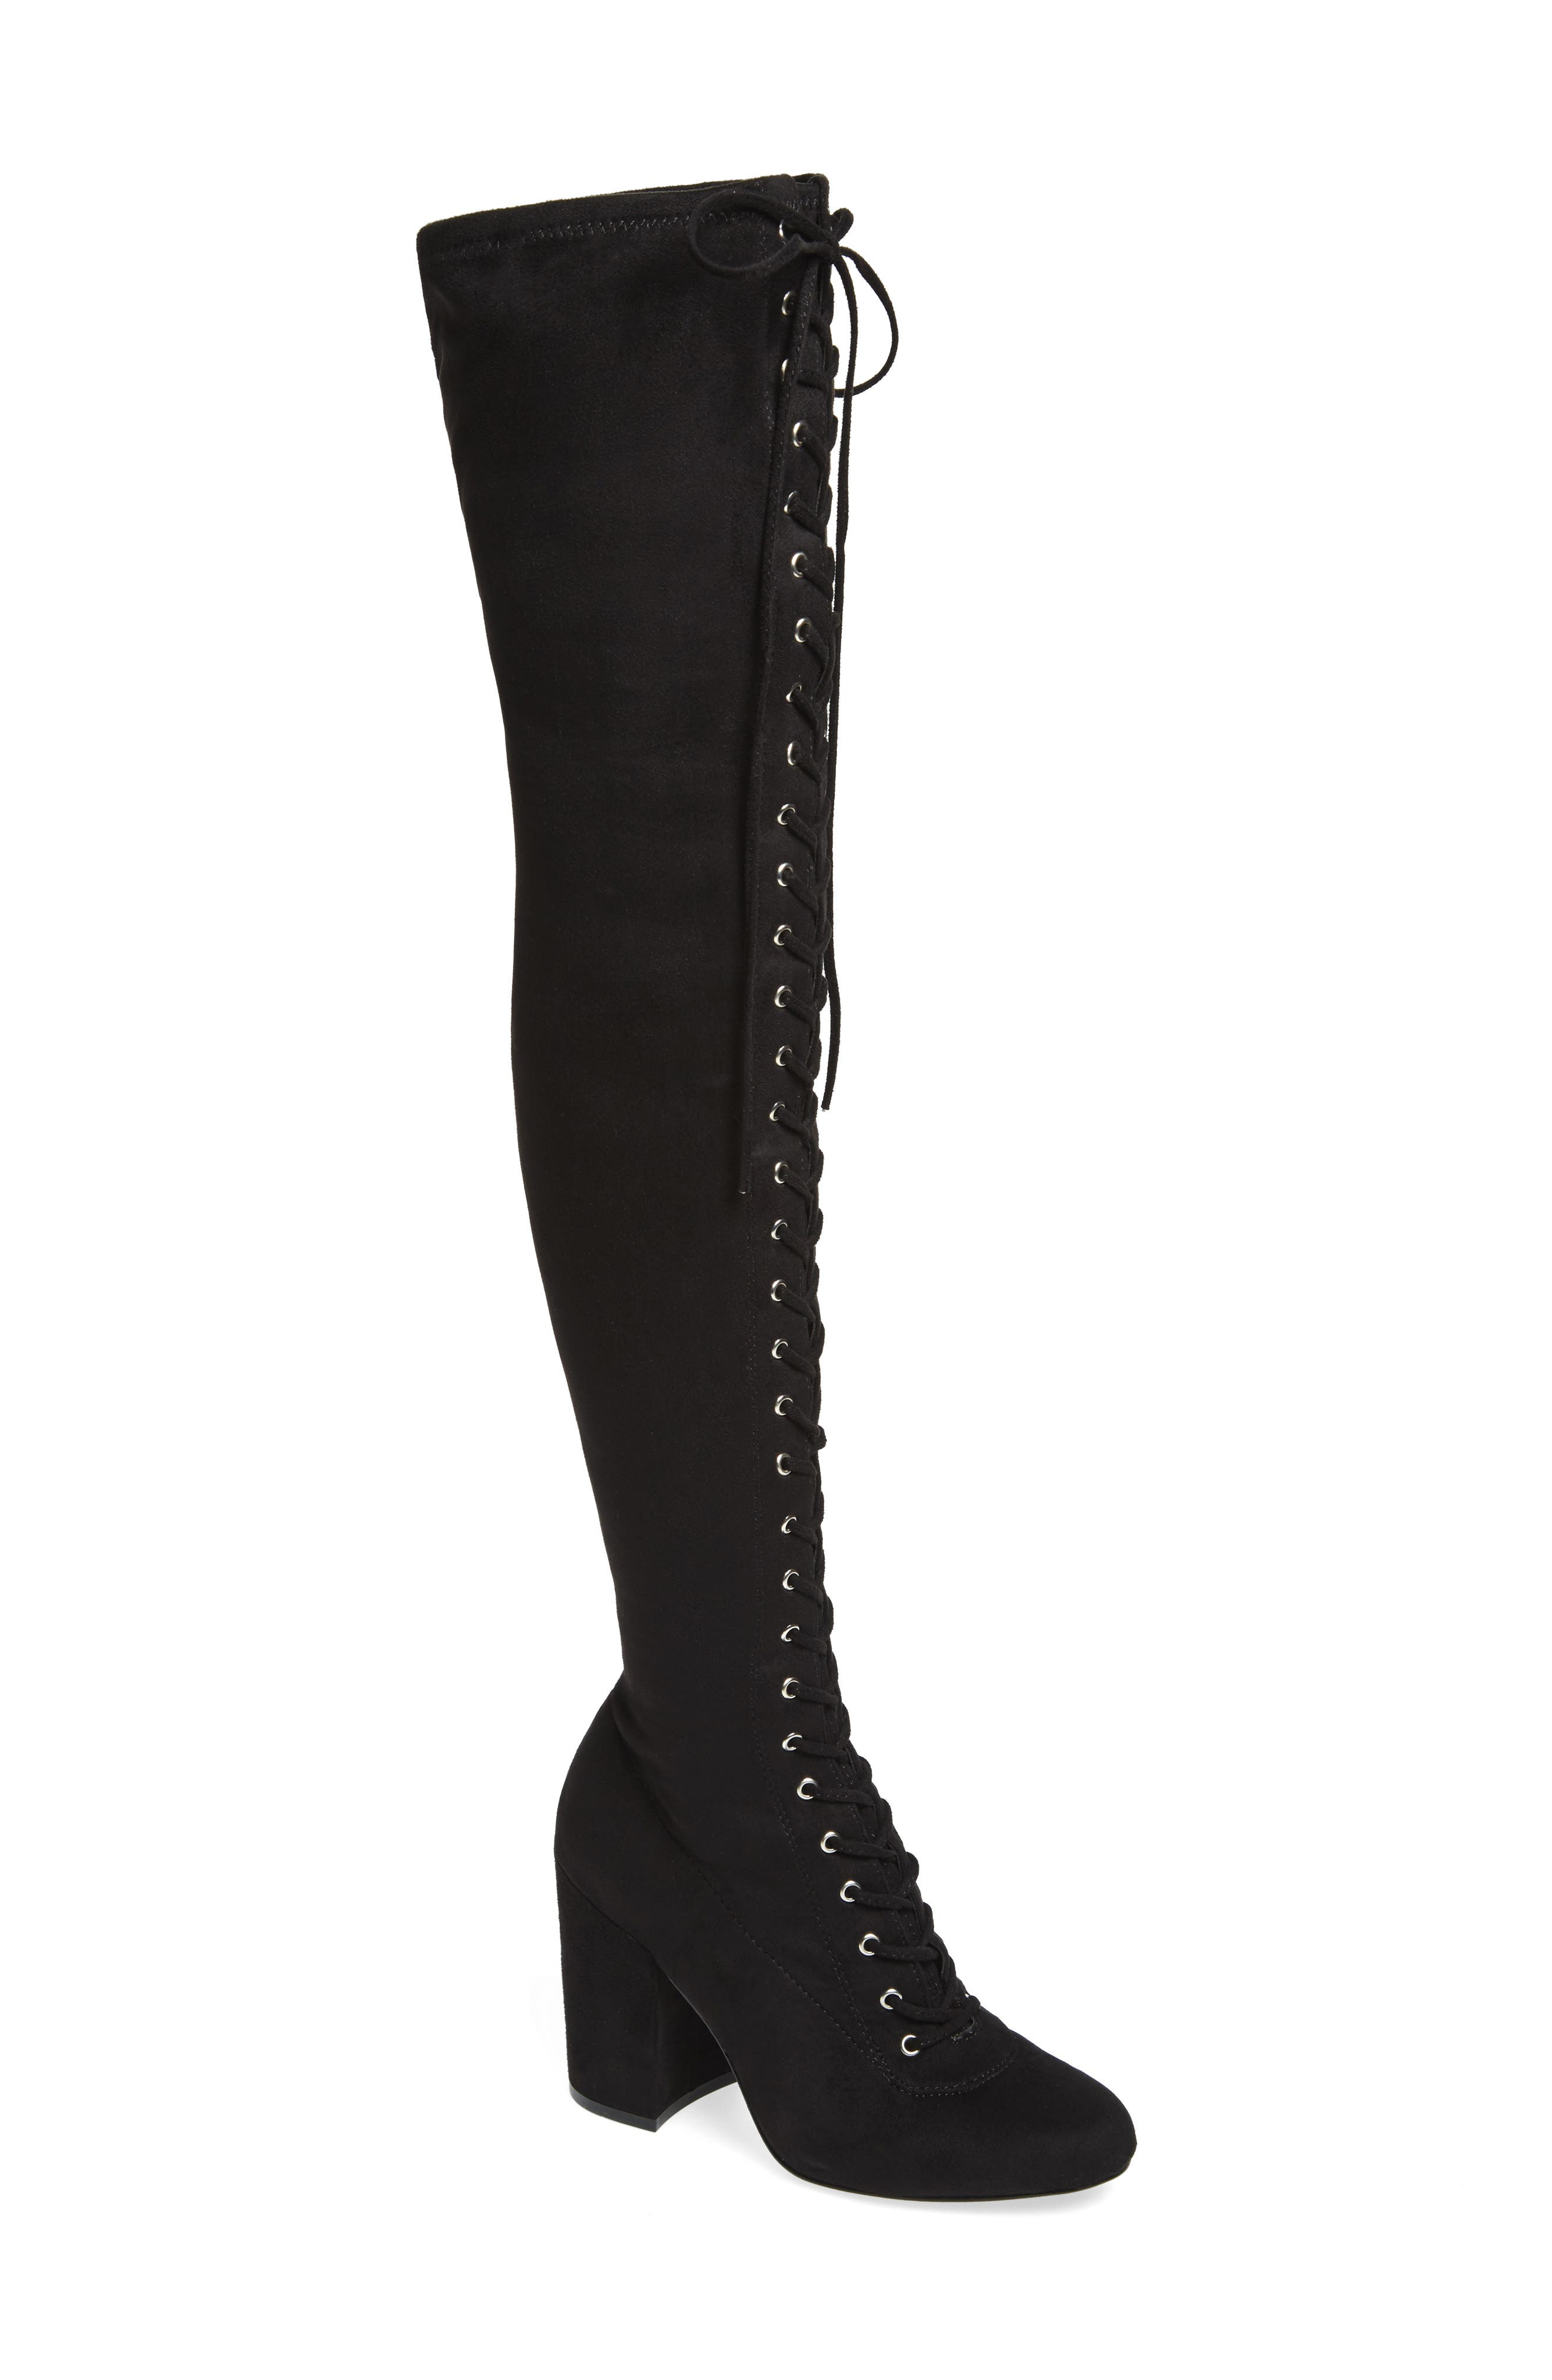 General Over the Knee Boot,                         Main,                         color, Black Suede